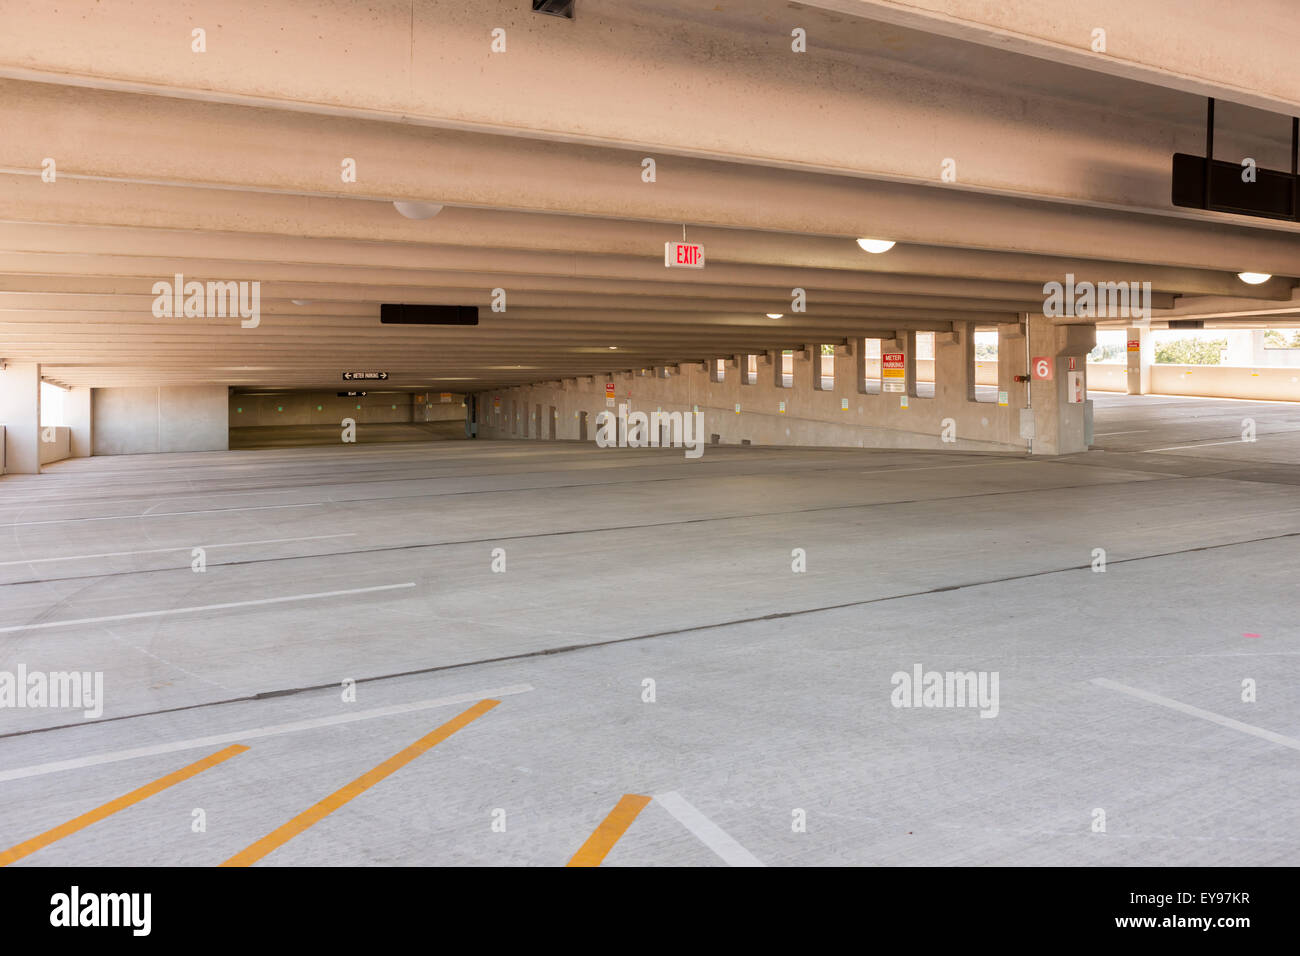 Location Garage Lyon An Empty Parking Level And Spaces In The Lyon Place Municipal